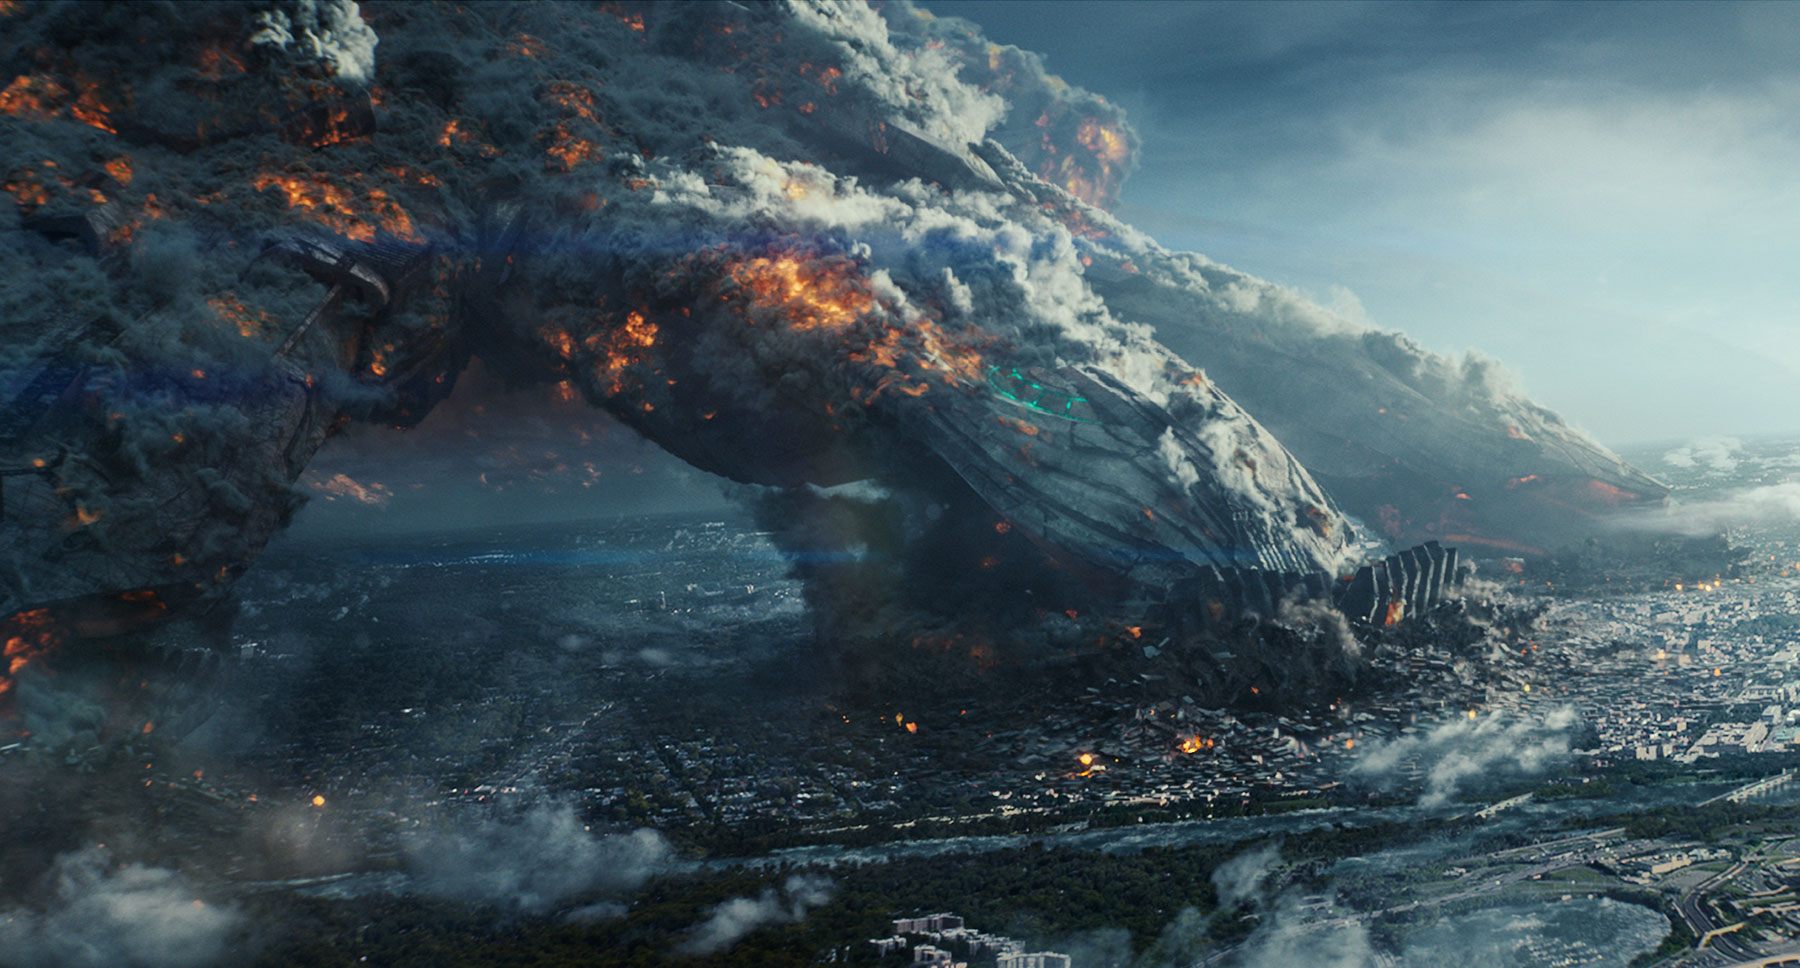 Epic mass destruction in Independence Day: Resurgence (2016)